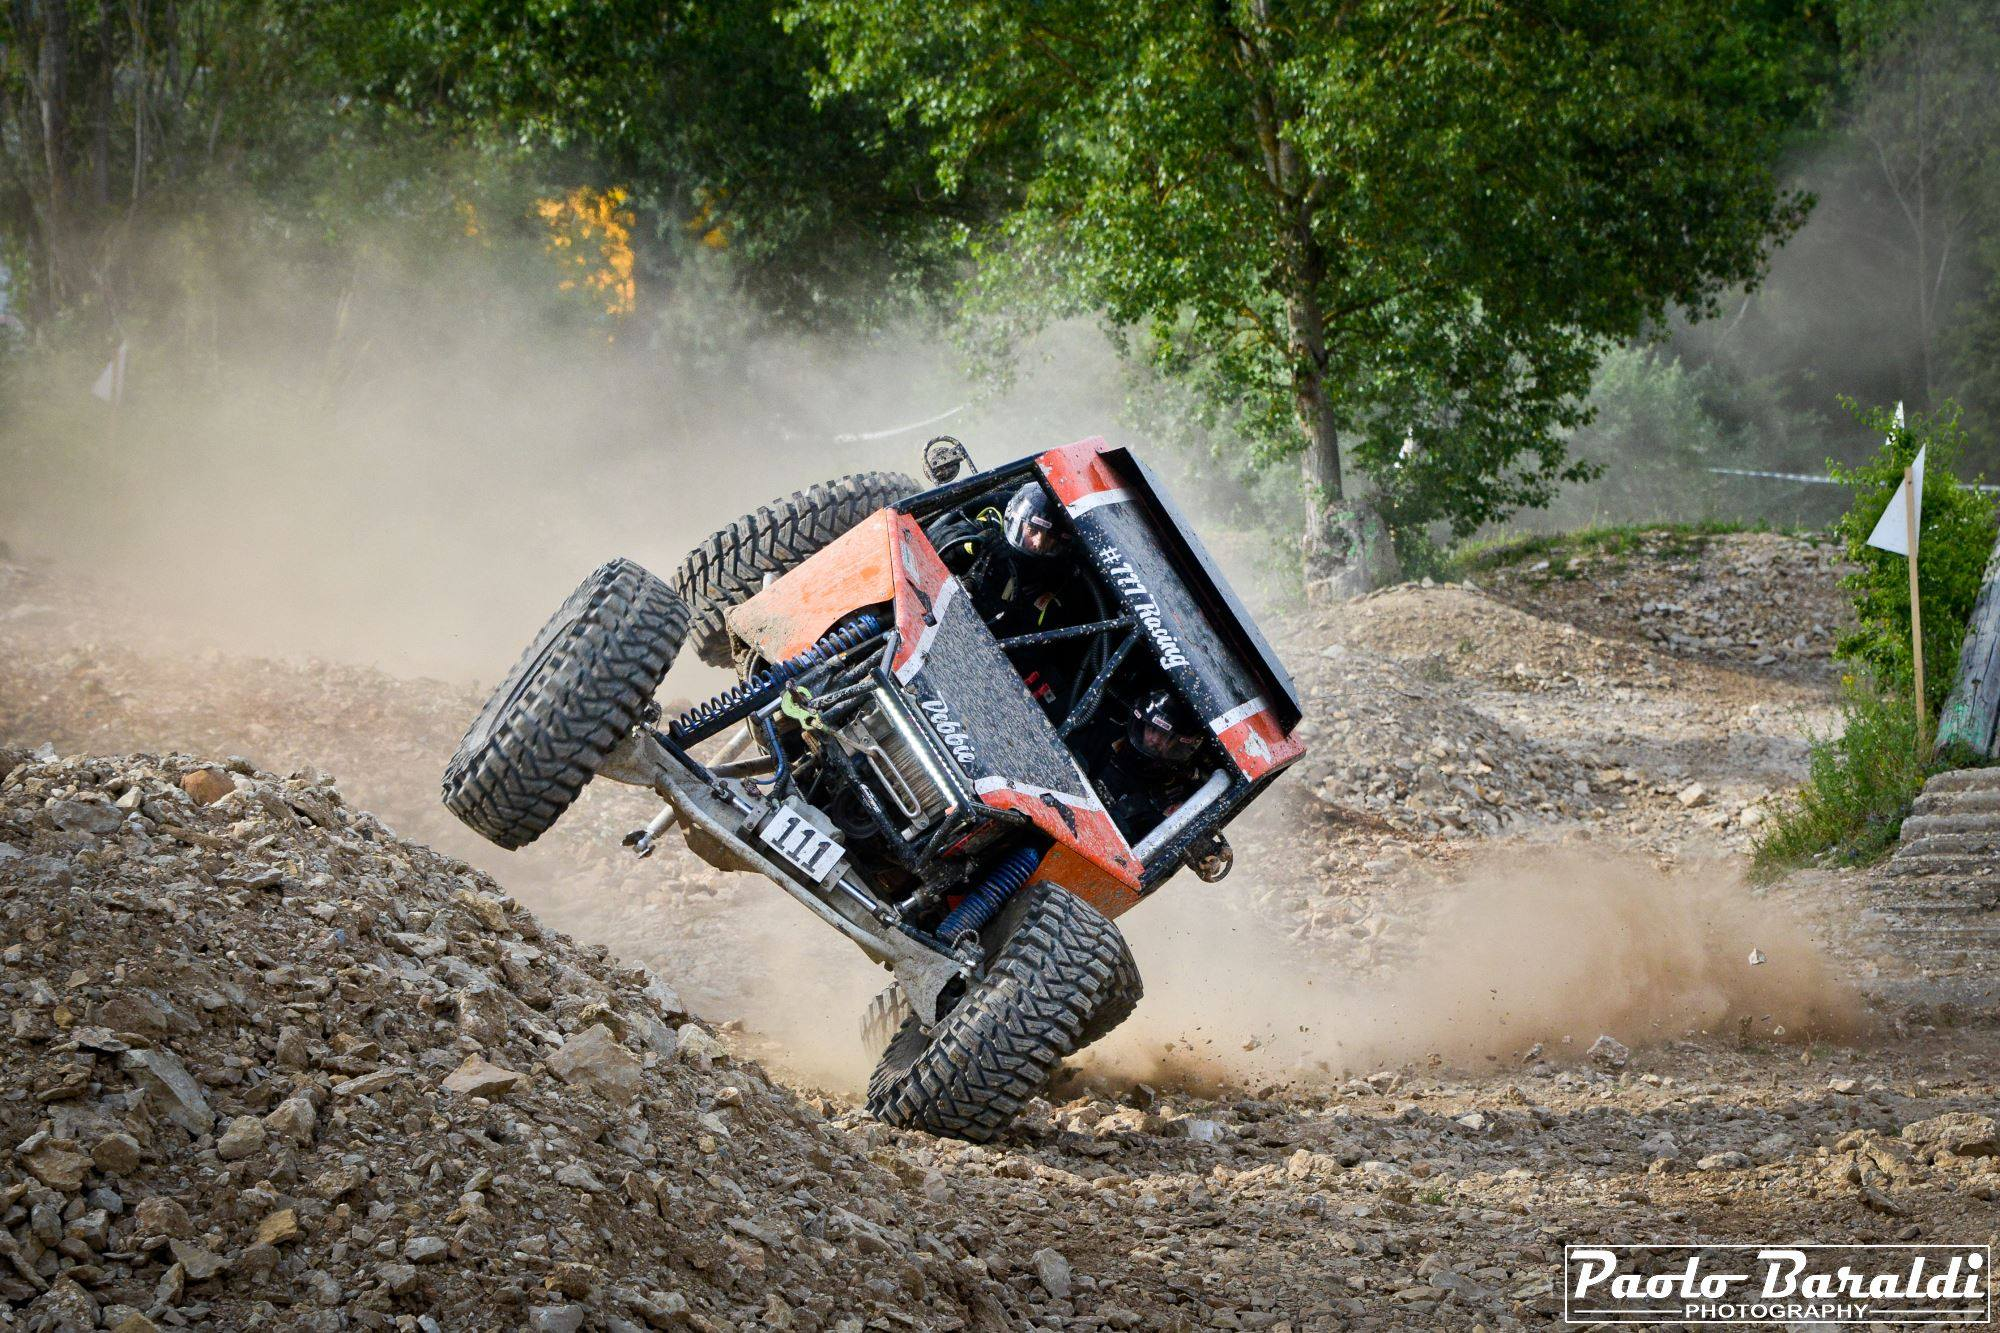 1111 Off-Road Racing team finished 9th at King of France 2019